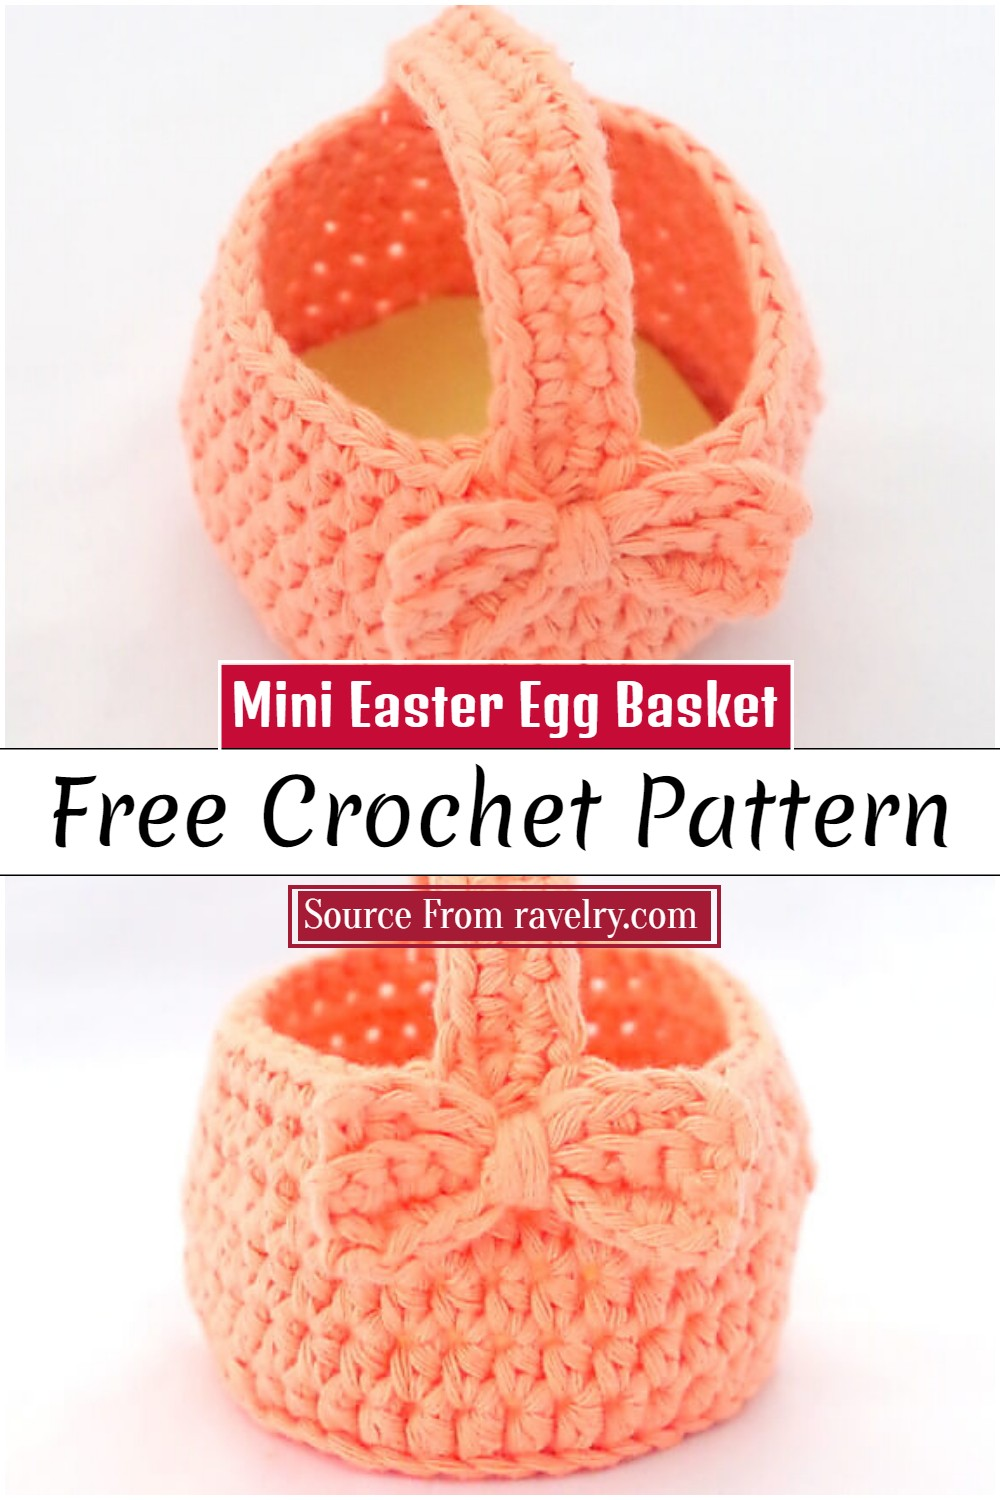 Mini Easter Egg Pattern